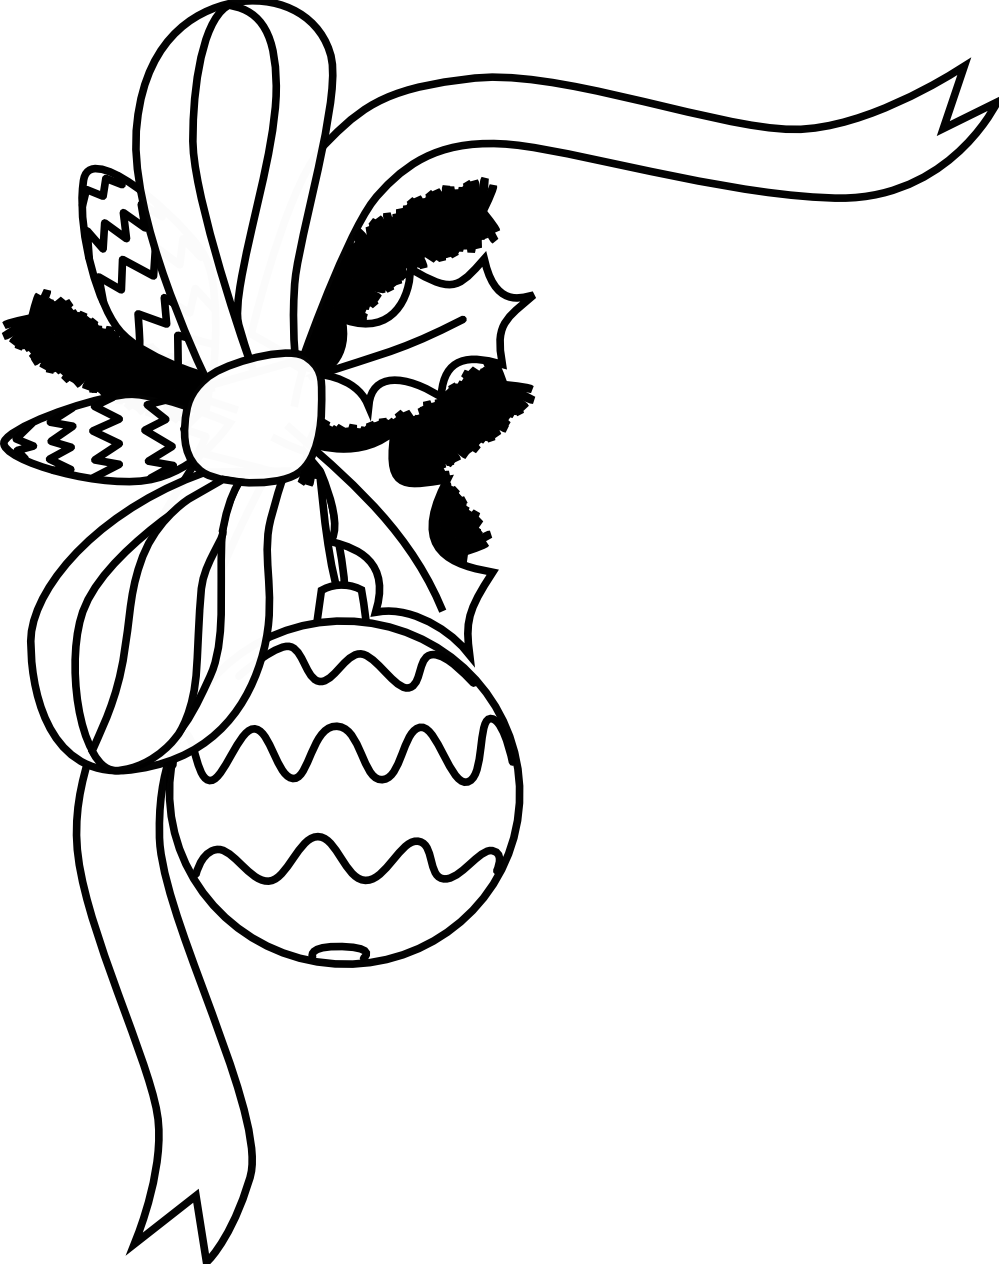 999x1264 Religious Christmas Clip Art Black And White Happy Holidays!